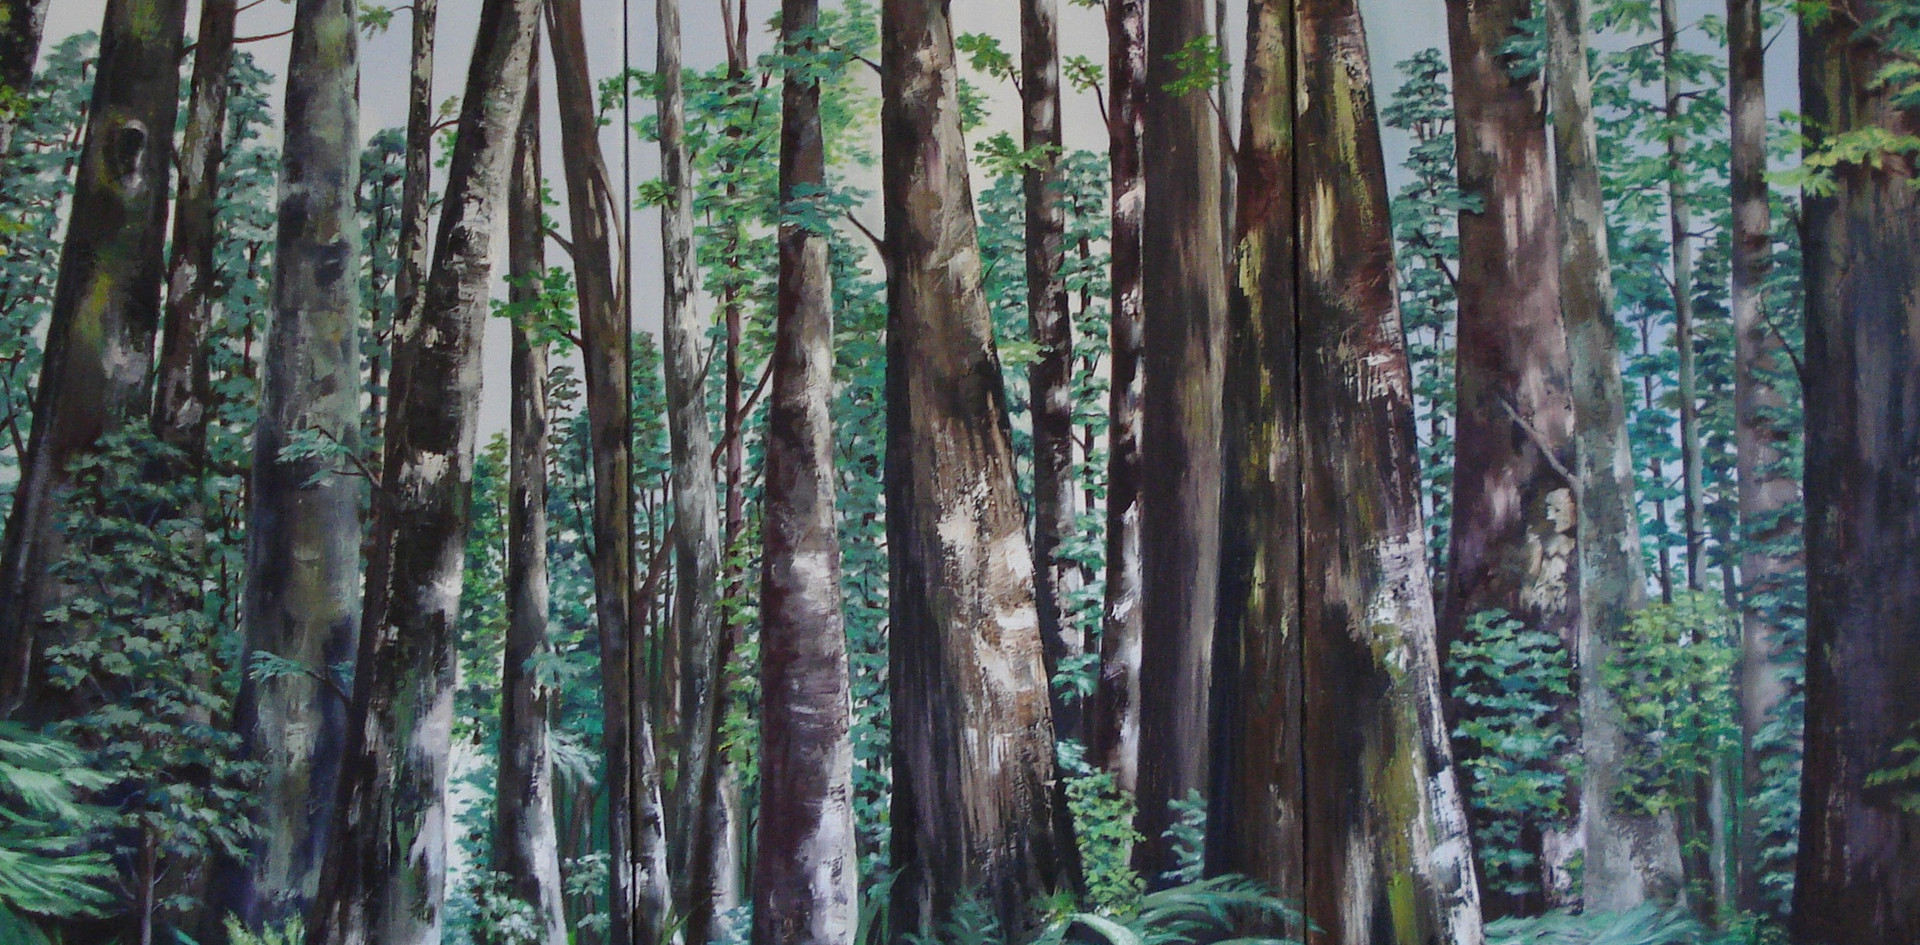 The Redwoods